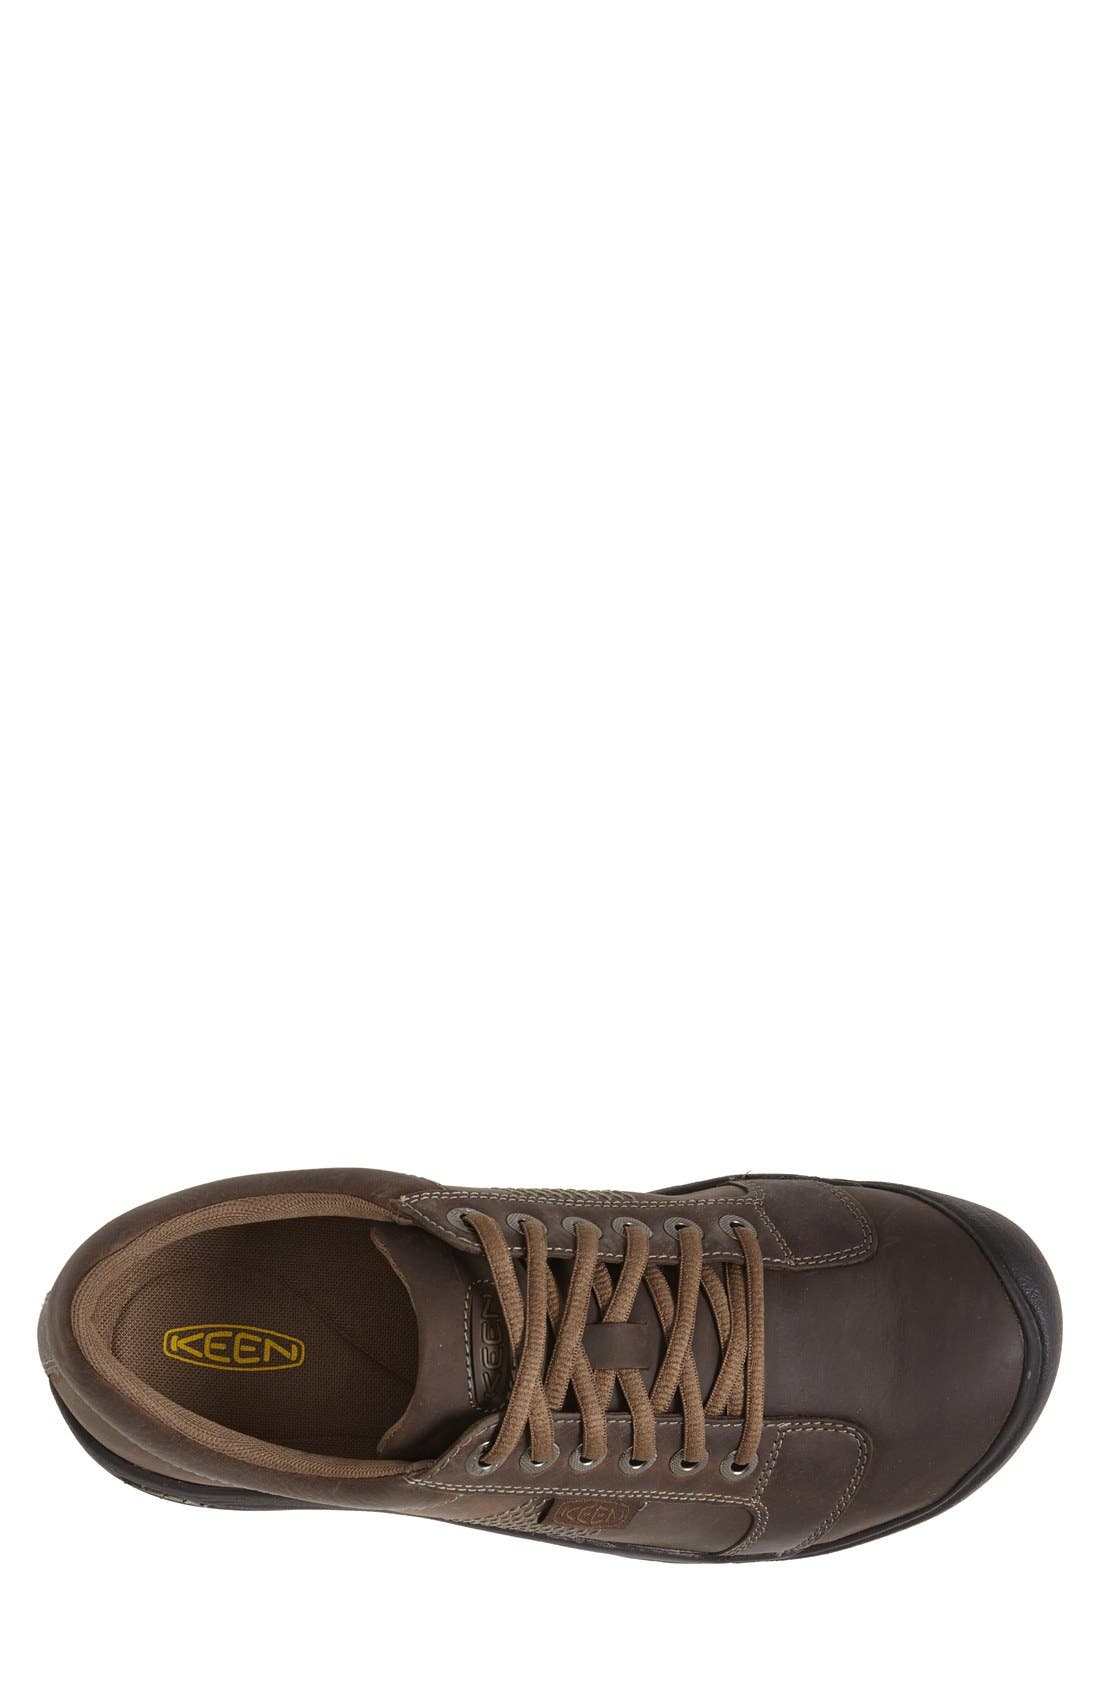 Alternate Image 3  - Keen 'Austin' Sneaker (Men)